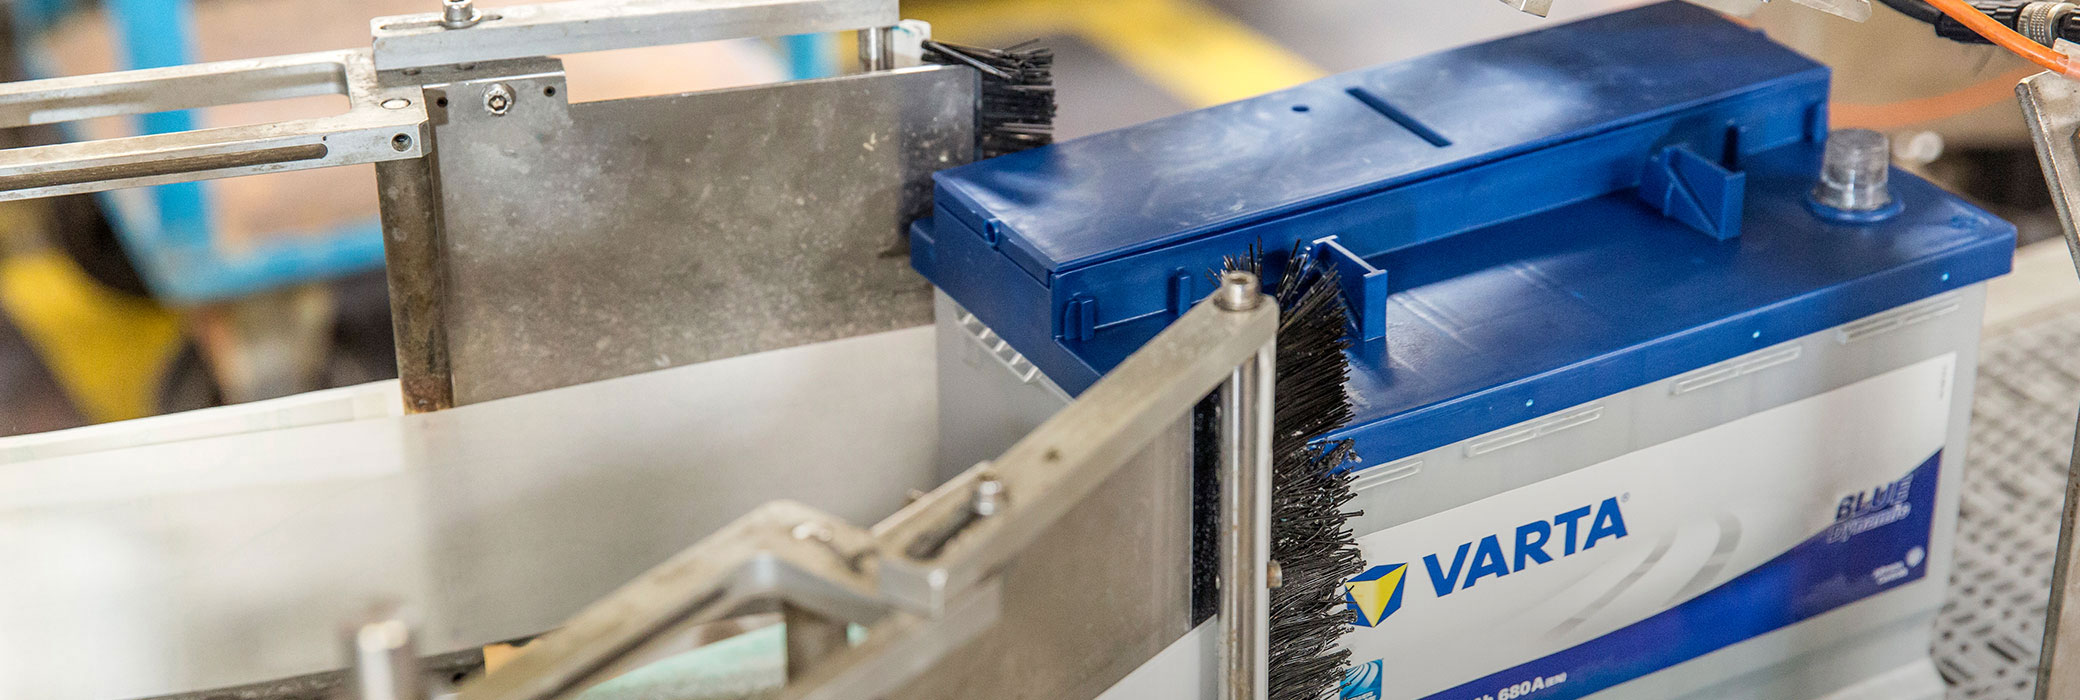 Batterie VARTA® dans une machinerie en production